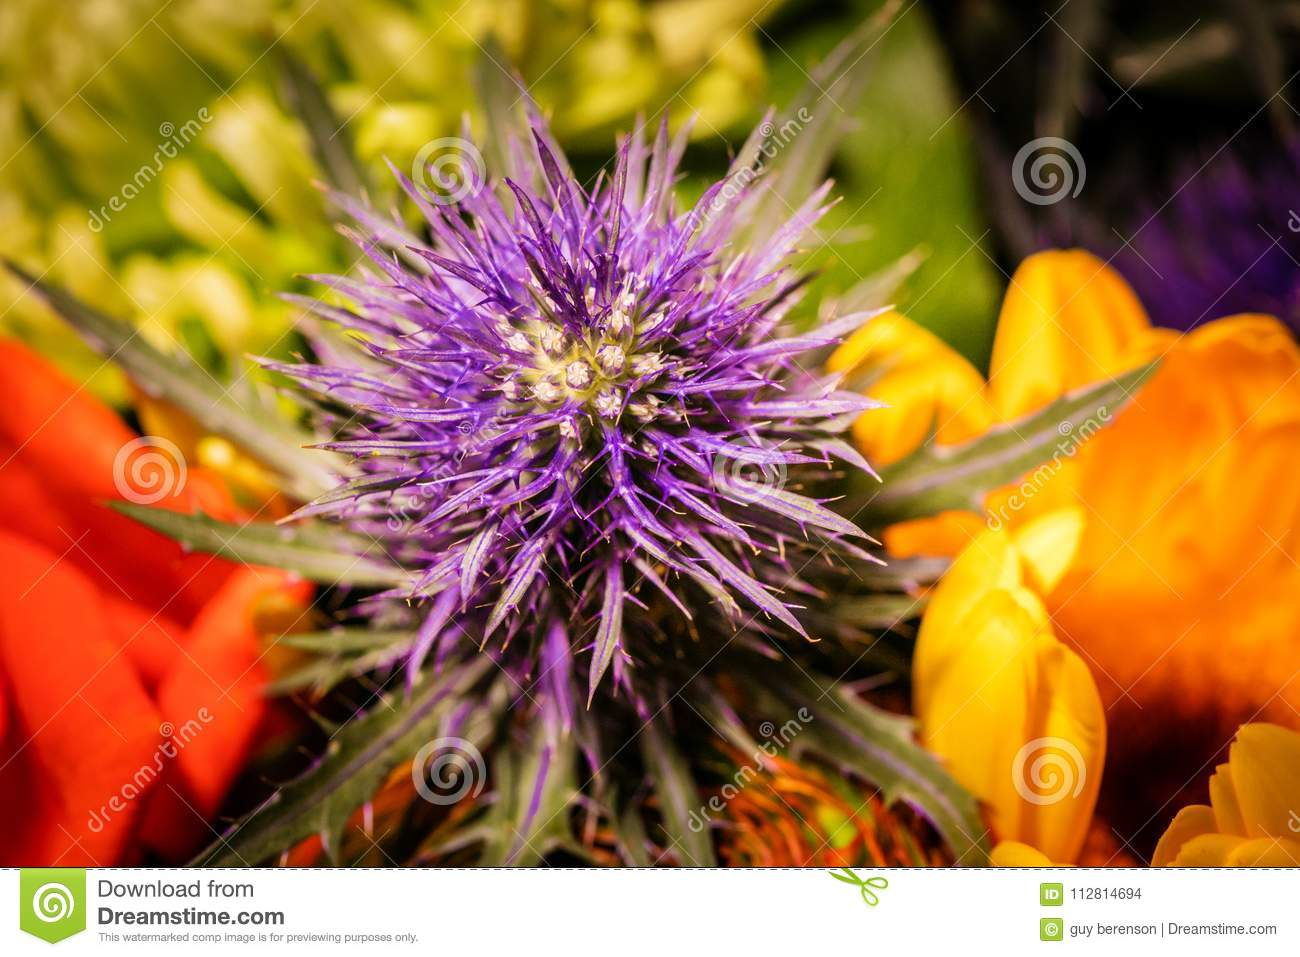 Close up photography on a flower in a bouqet